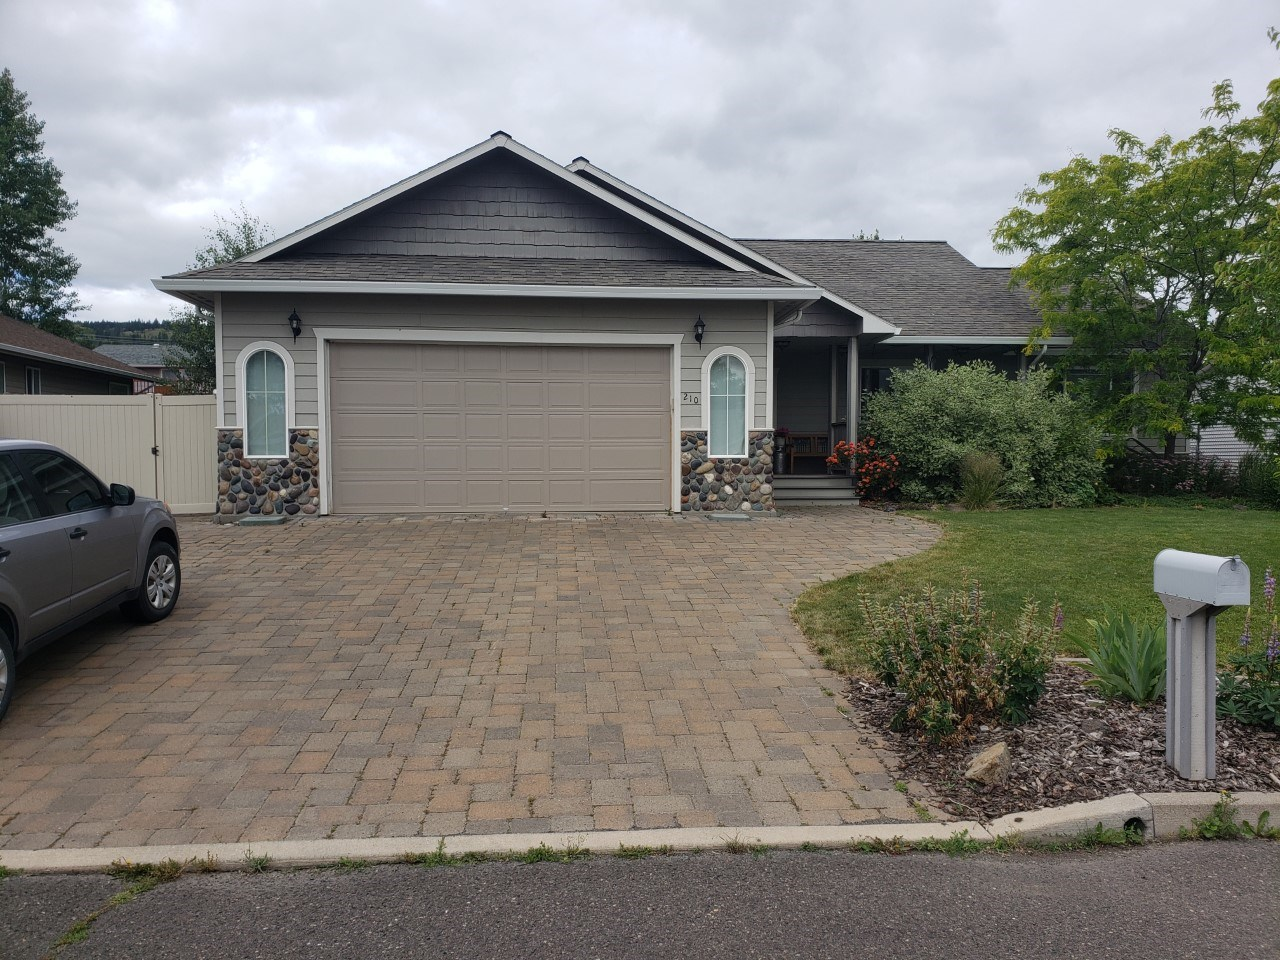 Eastern Oregon Home in Town for Sale near University